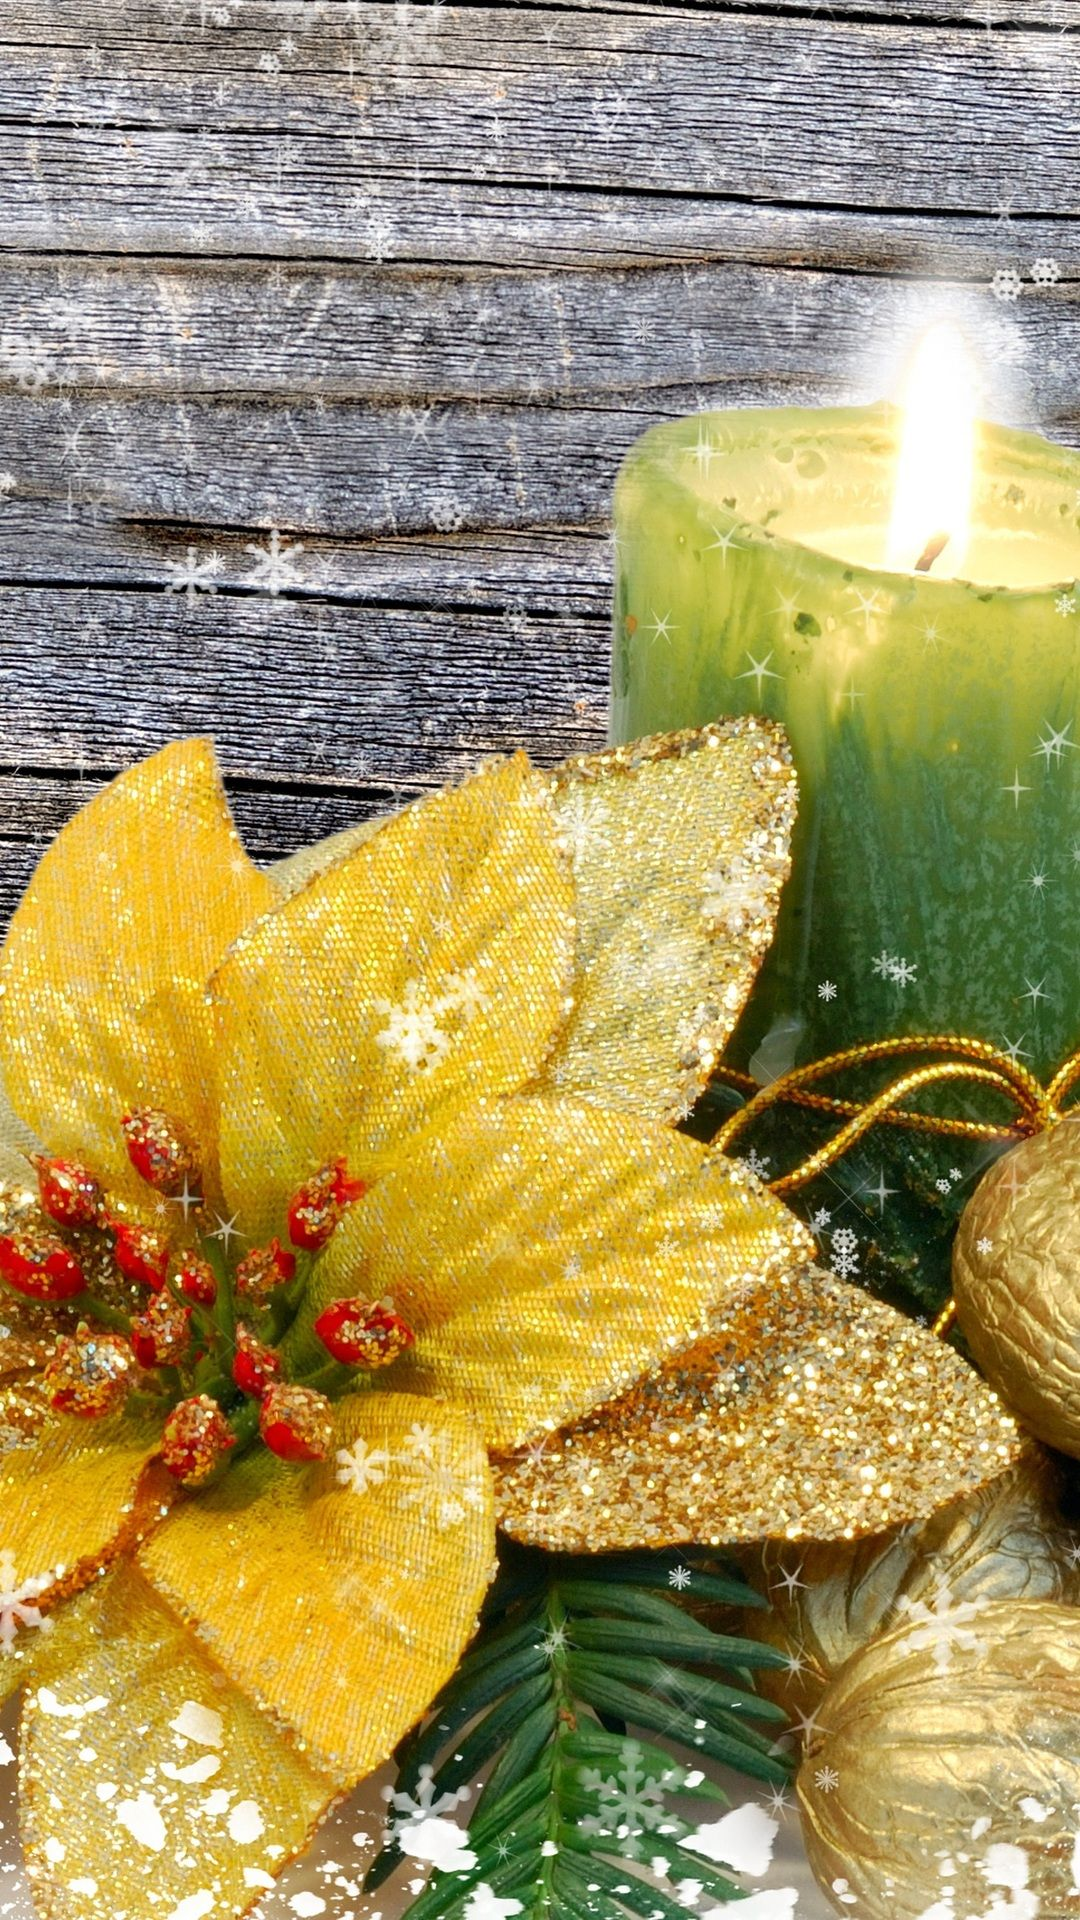 Candle gold plated snowflakes nuts flower photo wallpapers